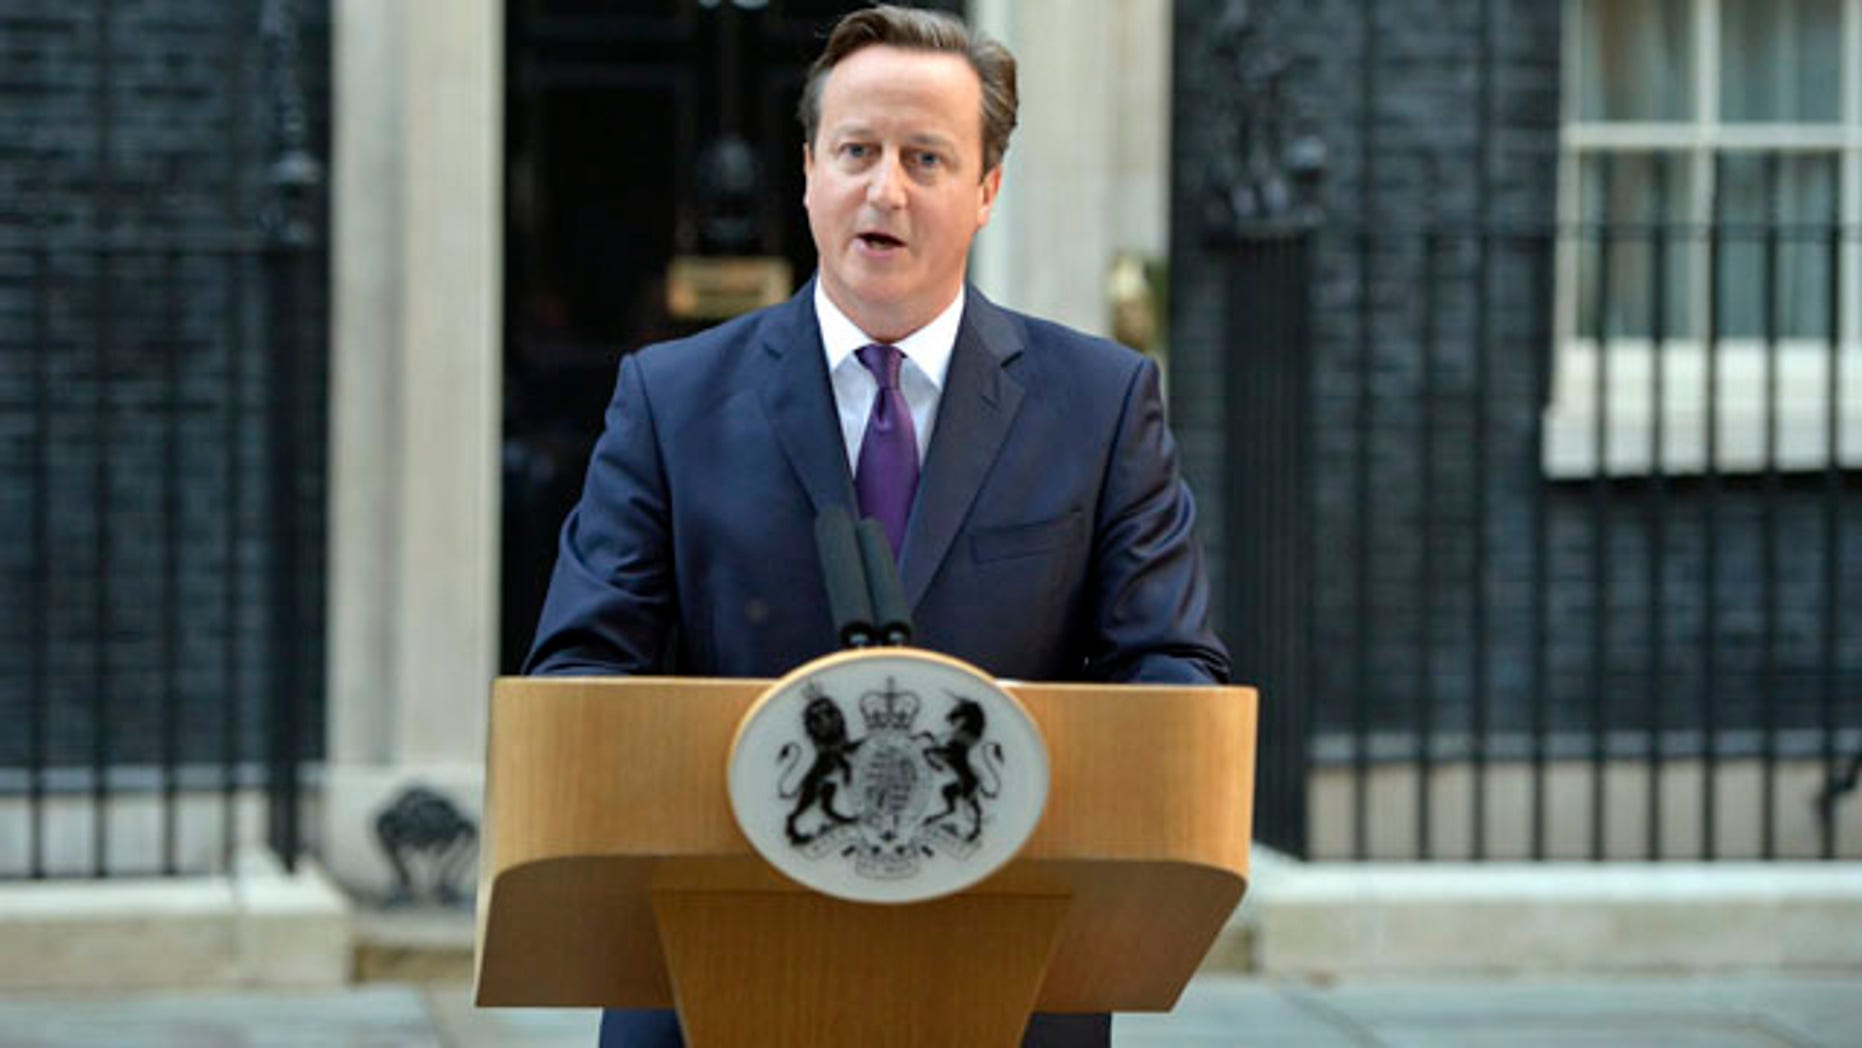 September 19, 2014: British Prime Minister David Cameron makes a statement regarding the result of the Scottish independence referendum in Downing Street in central London. (AP Photo/PA, Dominic Lipinski)